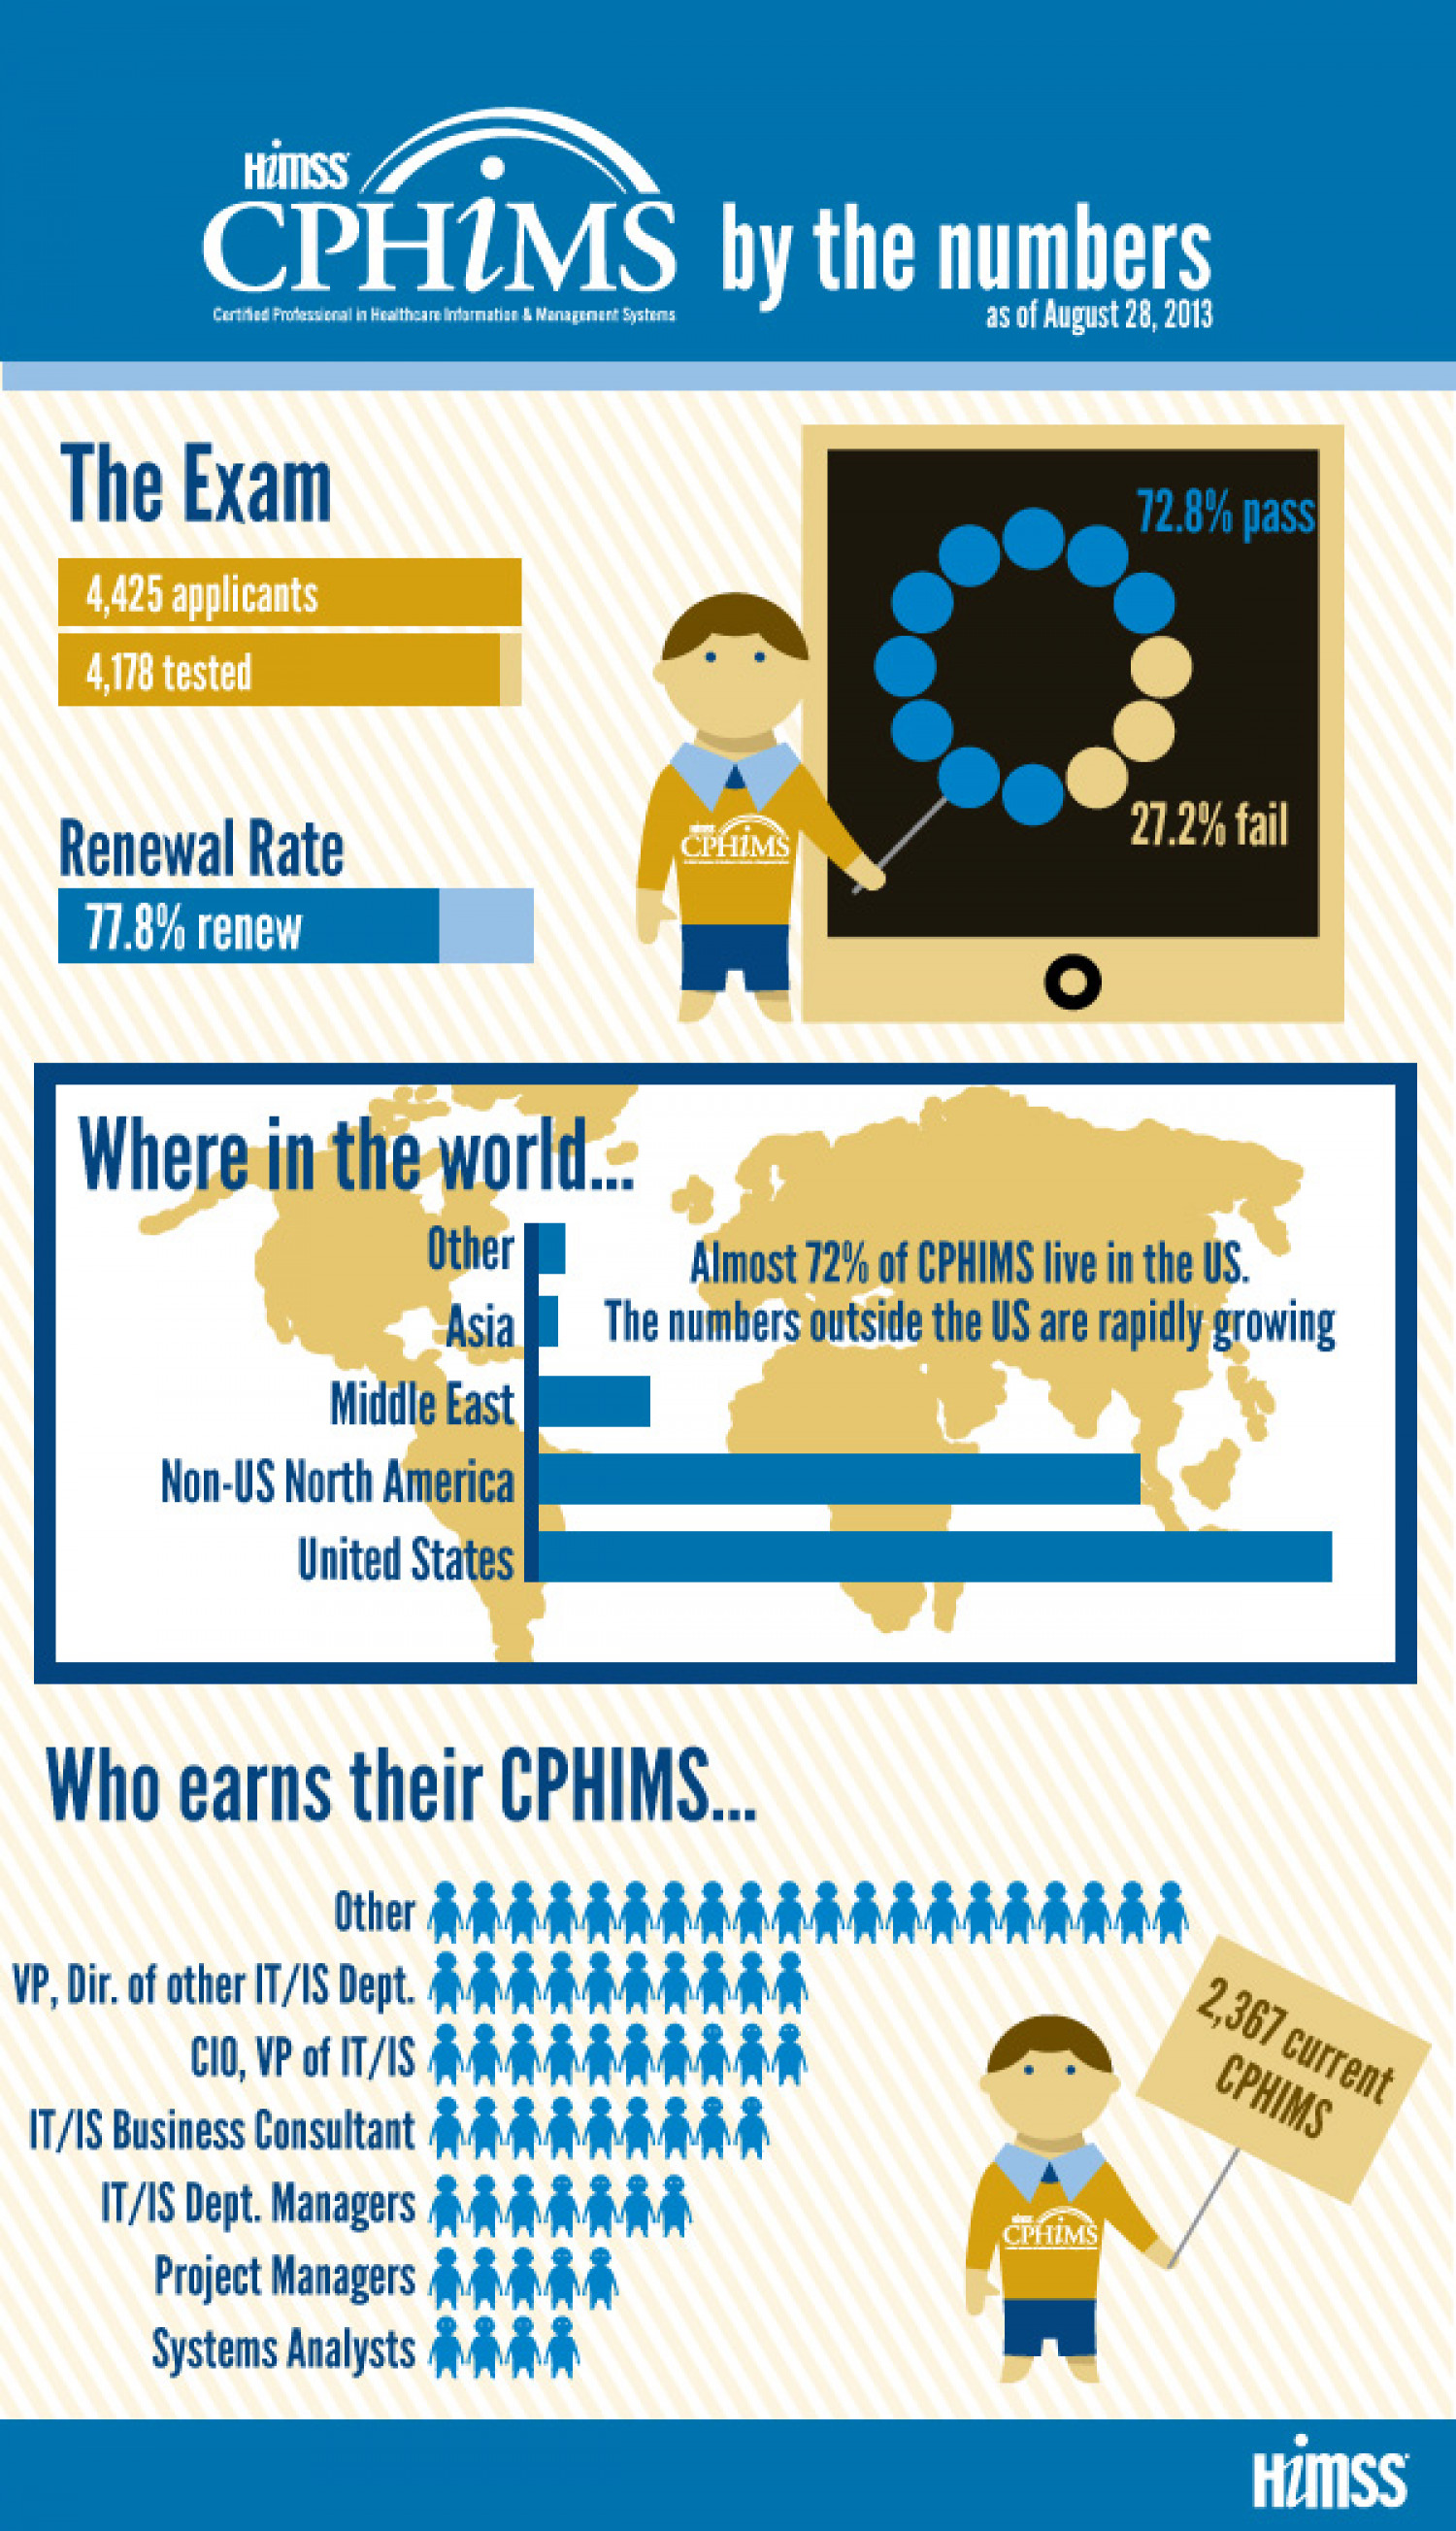 CPHIMS by the number Infographic